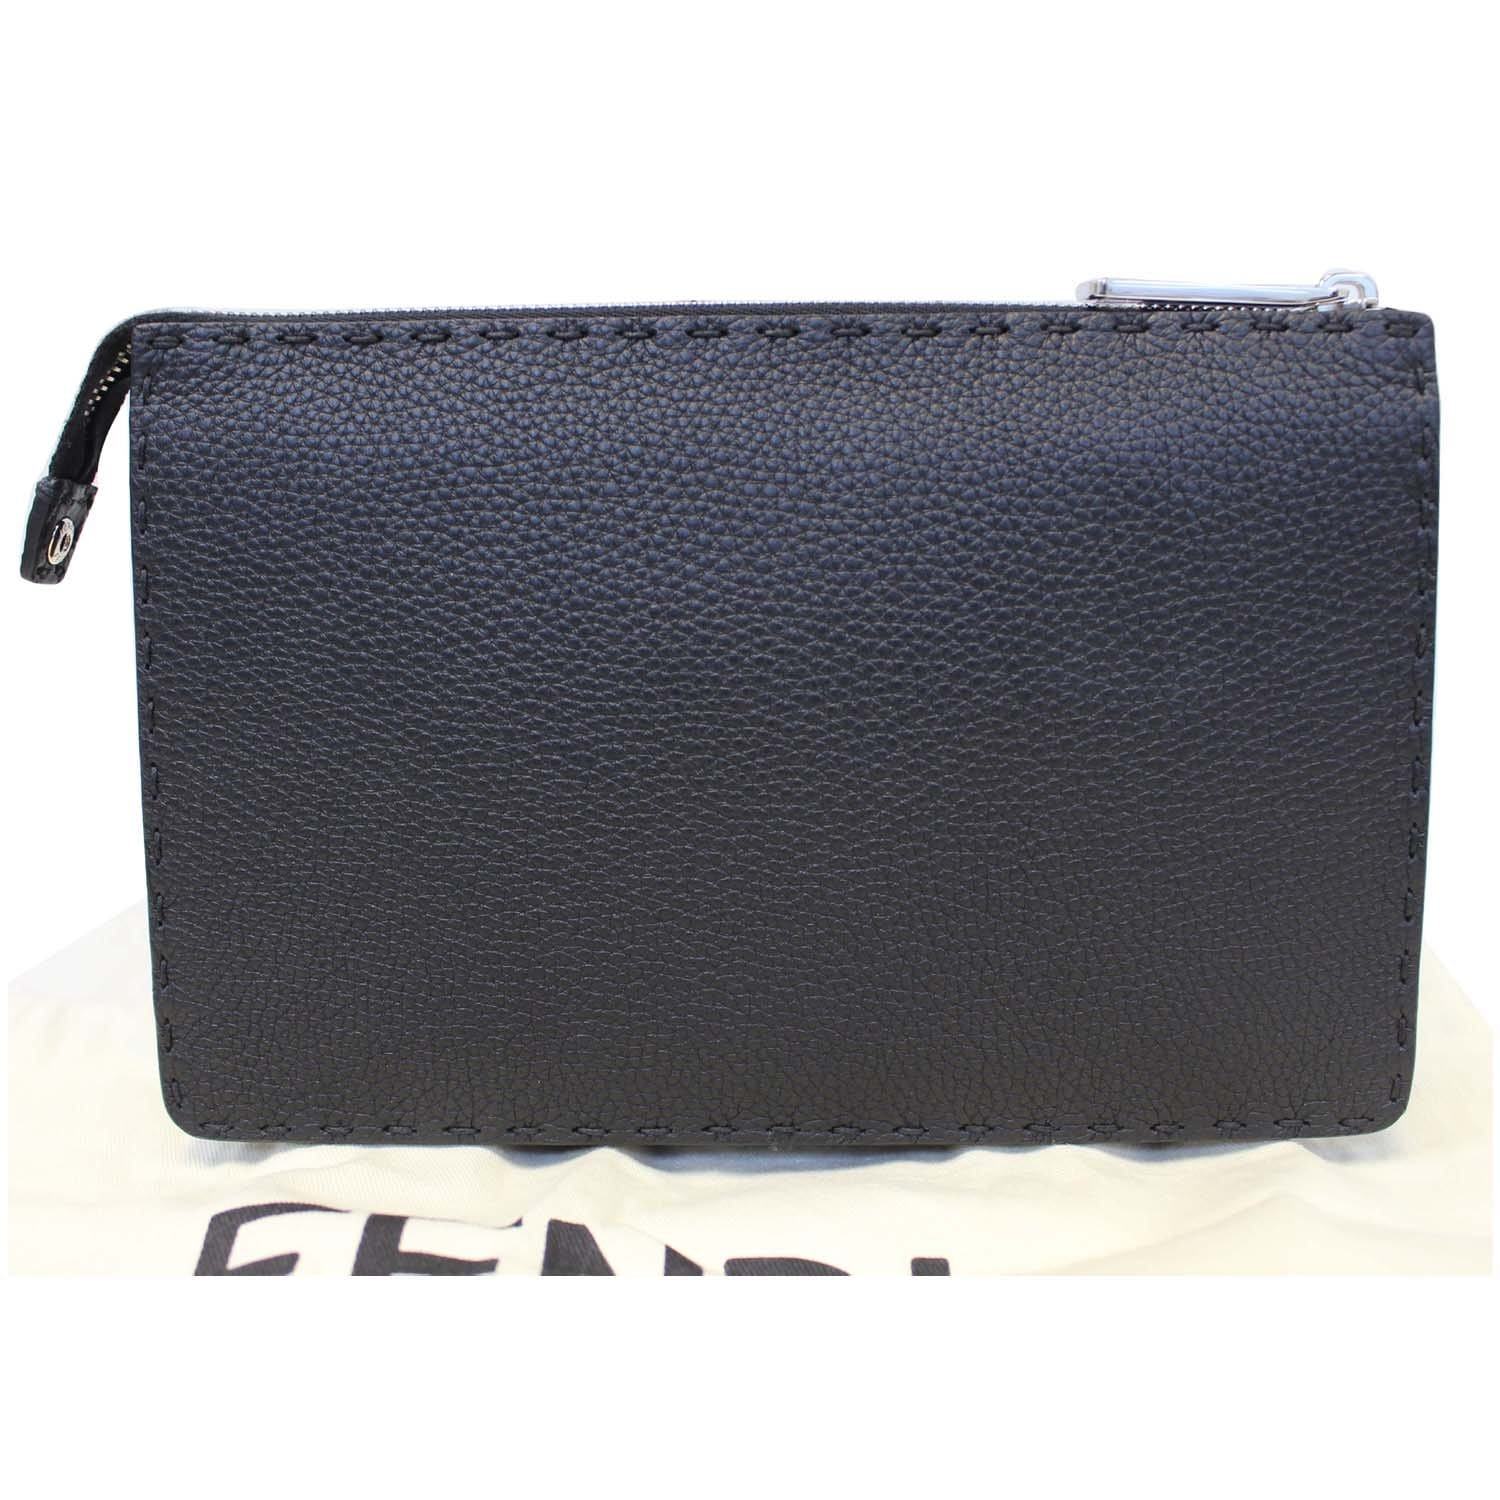 6332b7a6b2b FENDI Selleria Bag Bugs Slim Clutch Black-US